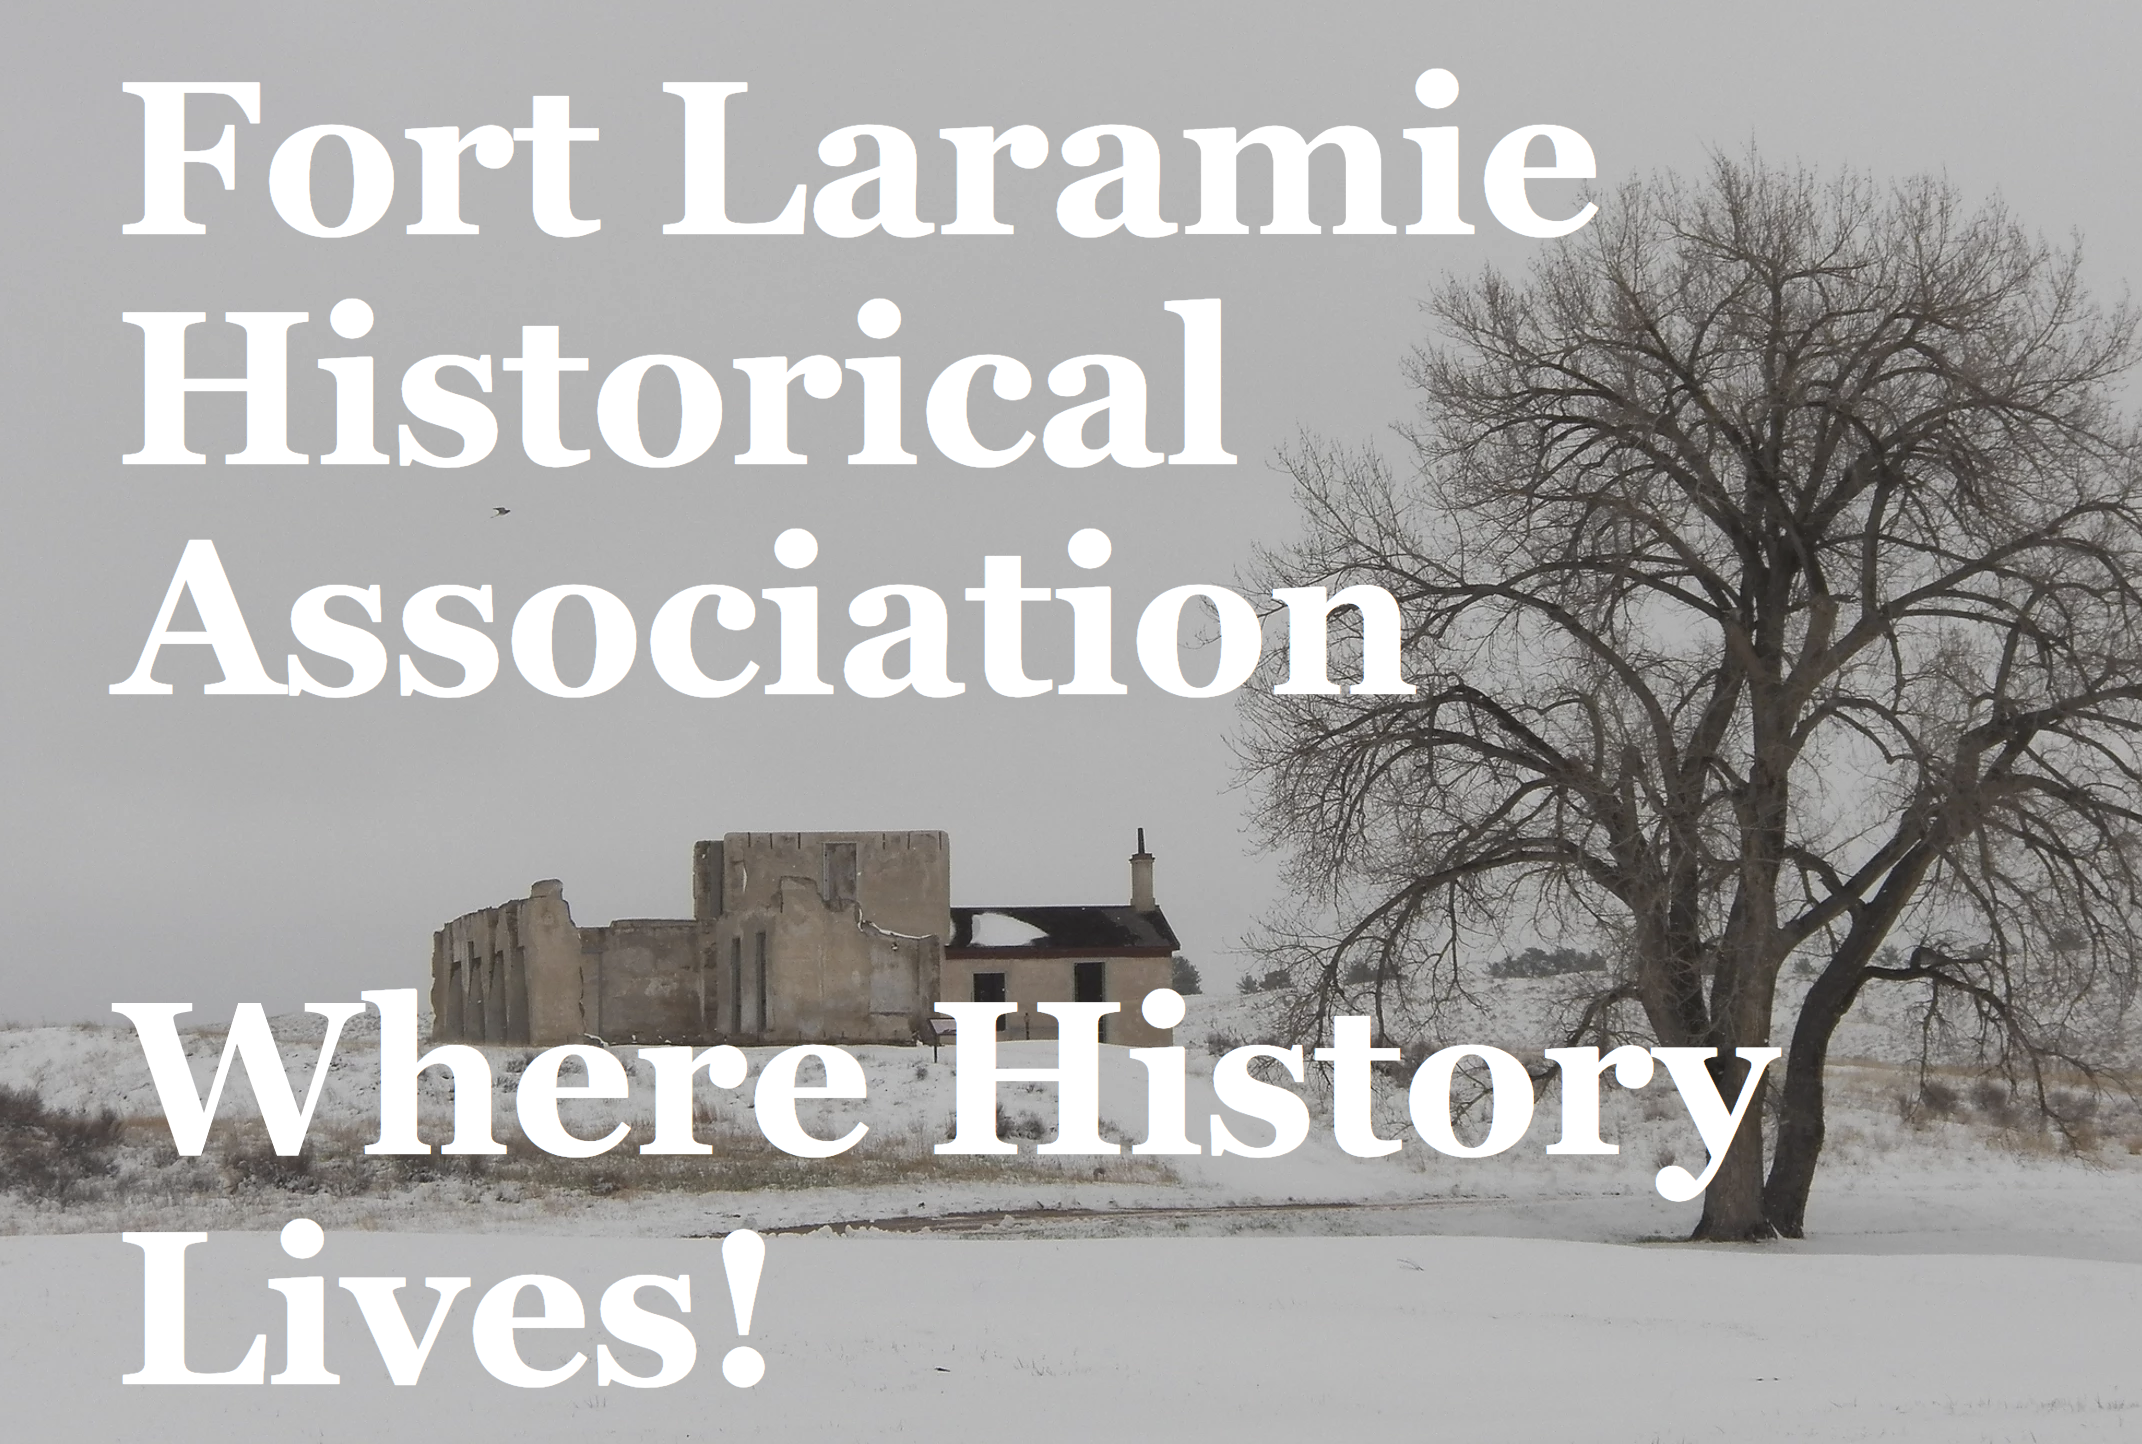 Fort Laramie Historical Association Slide Image